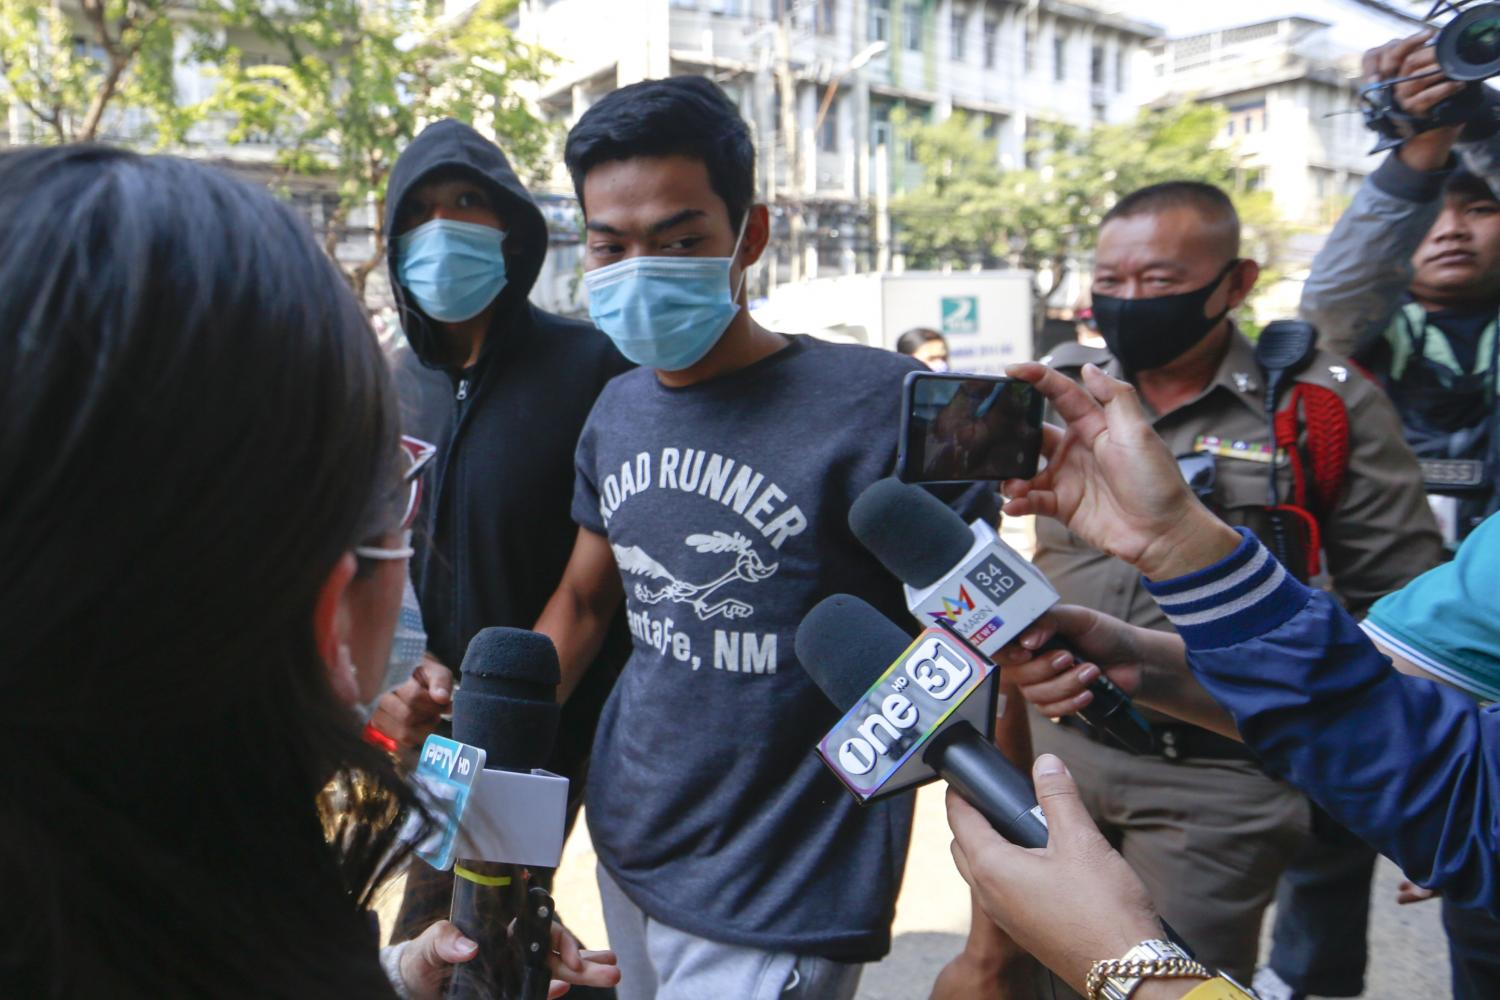 Chatree Srisombat, 19, (in the 'Runner' shirt) and Noppakao Obthom, 26, (in the hooded jacket) are escorted to Wat Phraya Krai police station on Wednesday. Mr Chatree was charged with selling the fatal 'k-powdered milk' blend and Mr Noppakao with possessing the drug. (Photo by Arnun Chonmahatrakool)